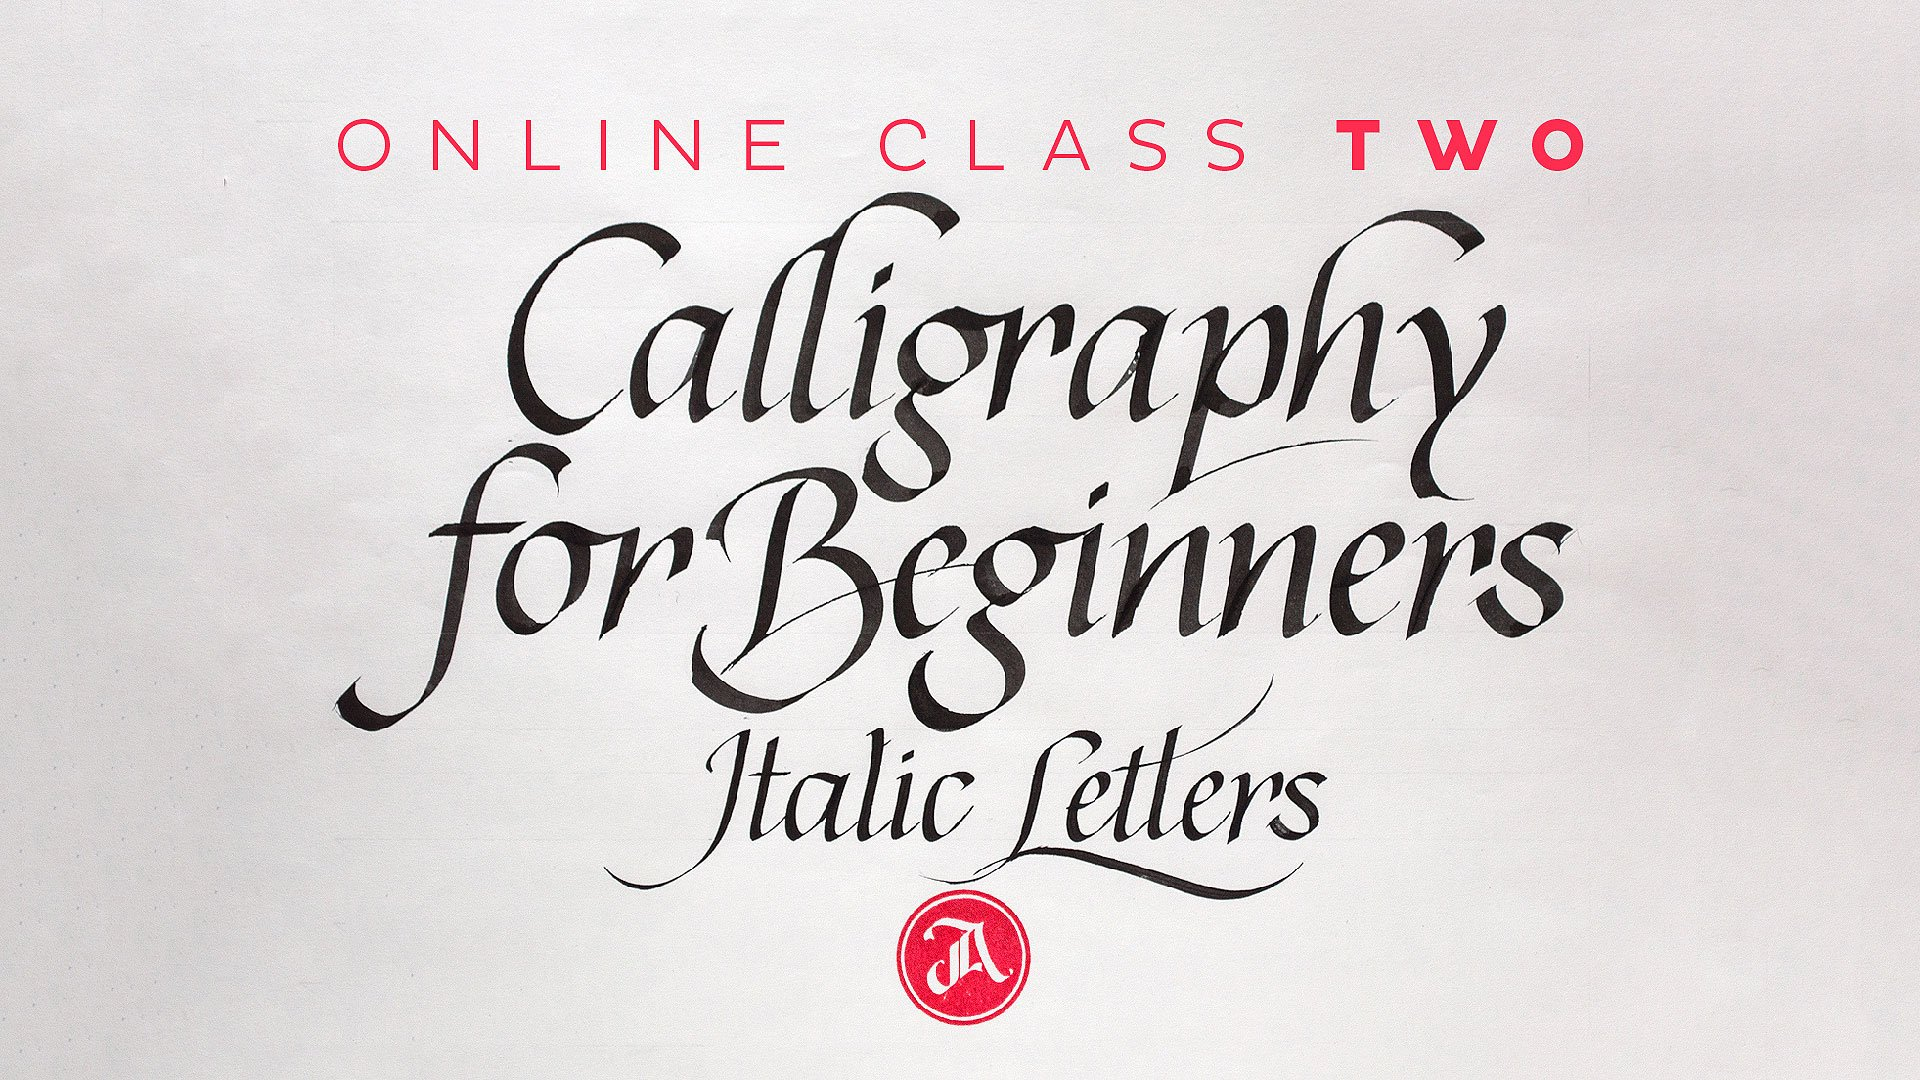 Calligraphy For Beginners Online Calligraphy For Beginners 2 The Elegance Of Italics Jackson